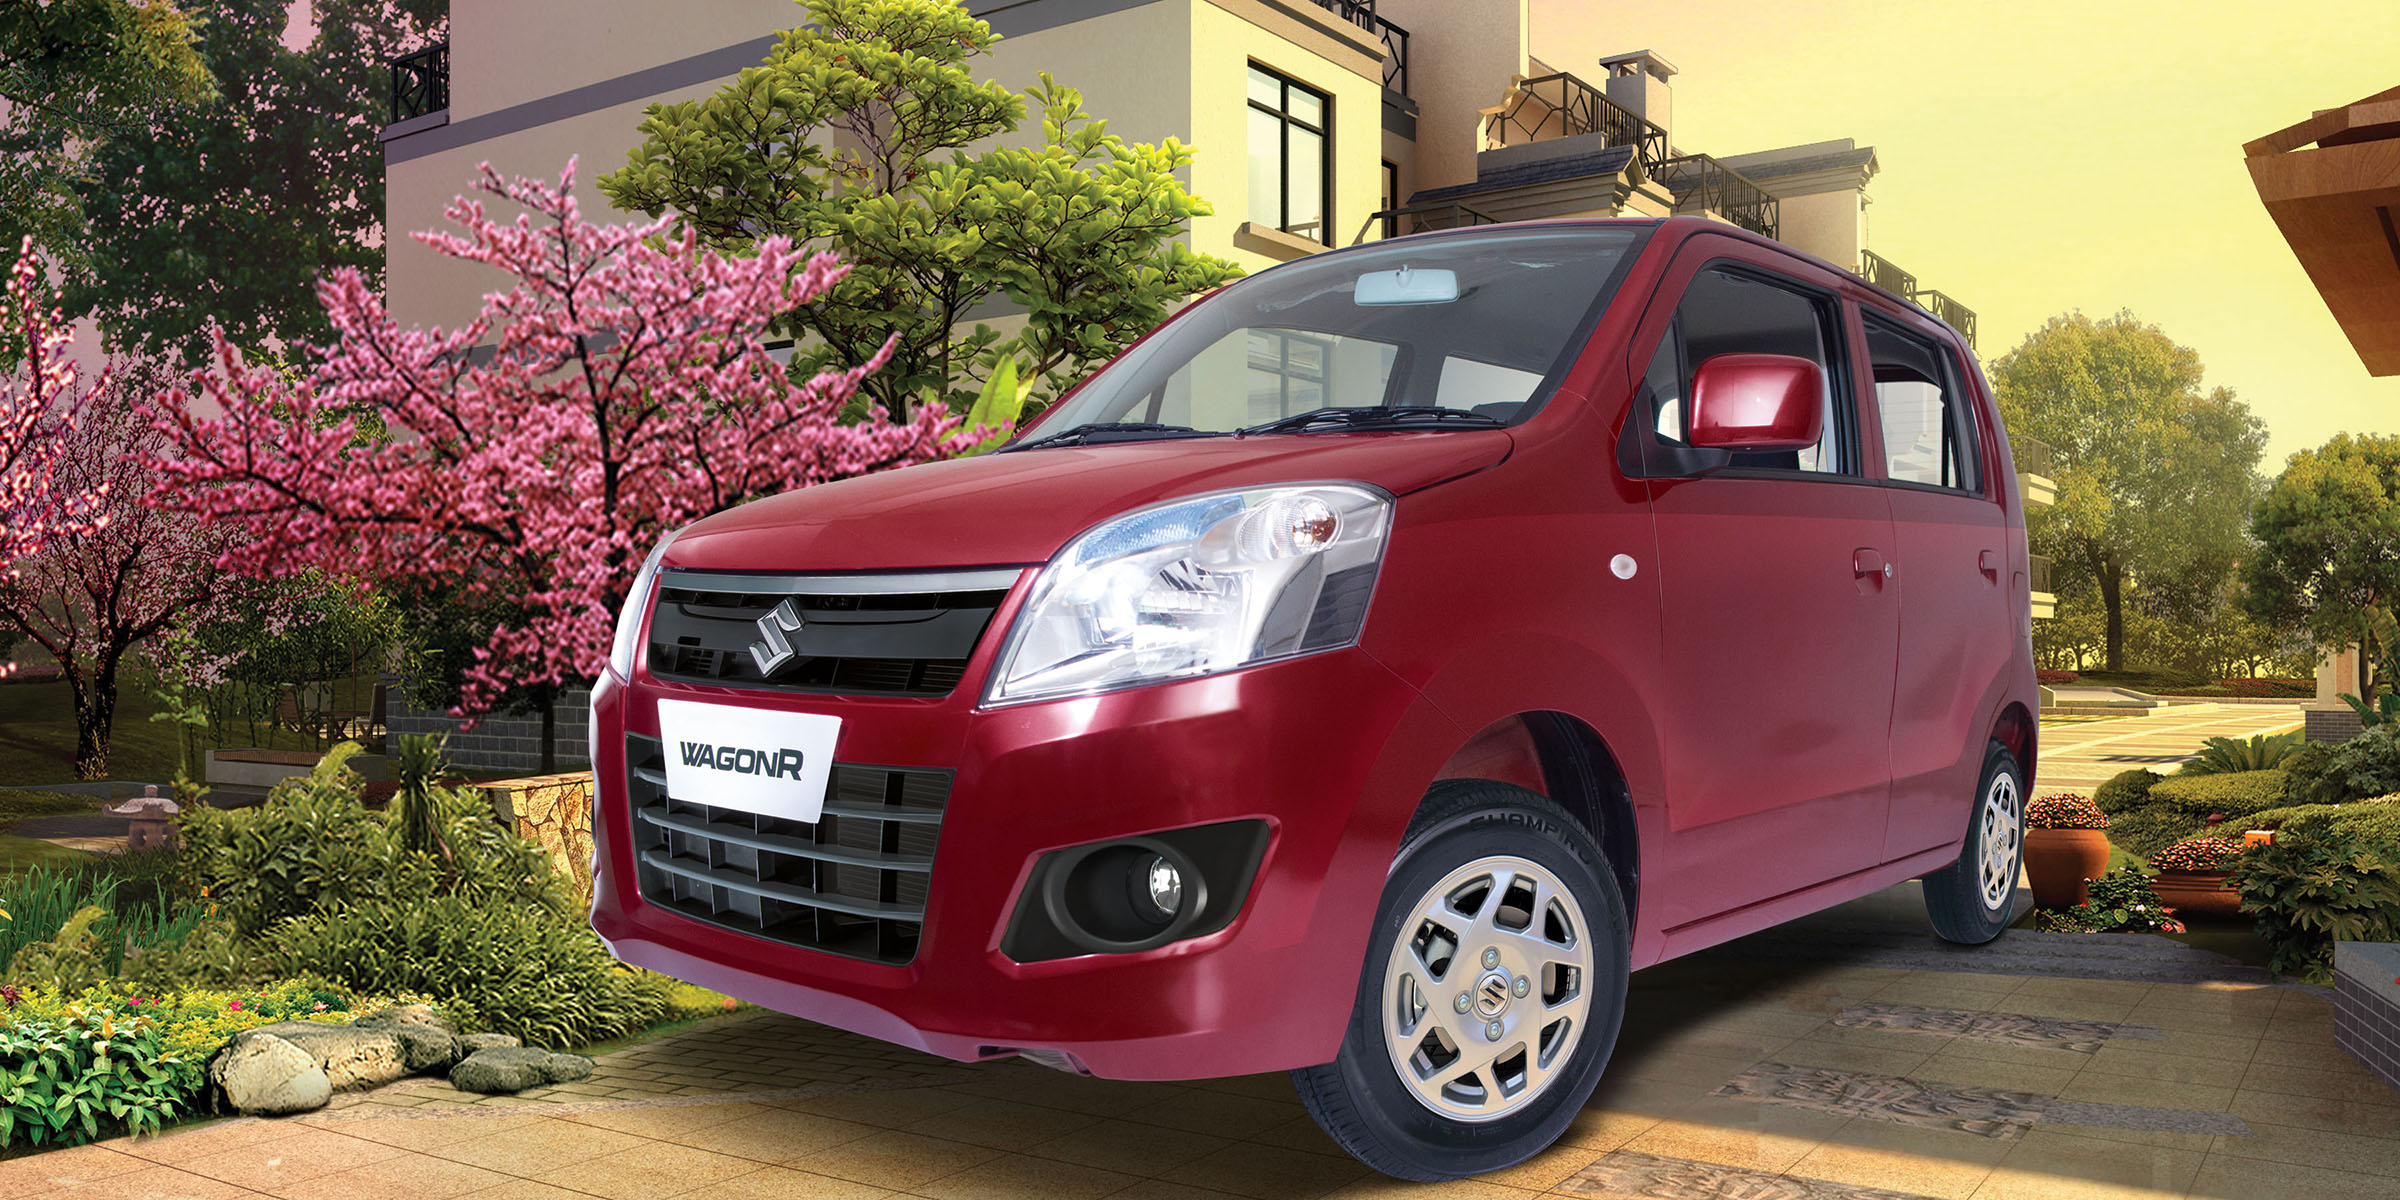 Suzuki Wagon R 2021 Prices in Pakistan Features, Specs